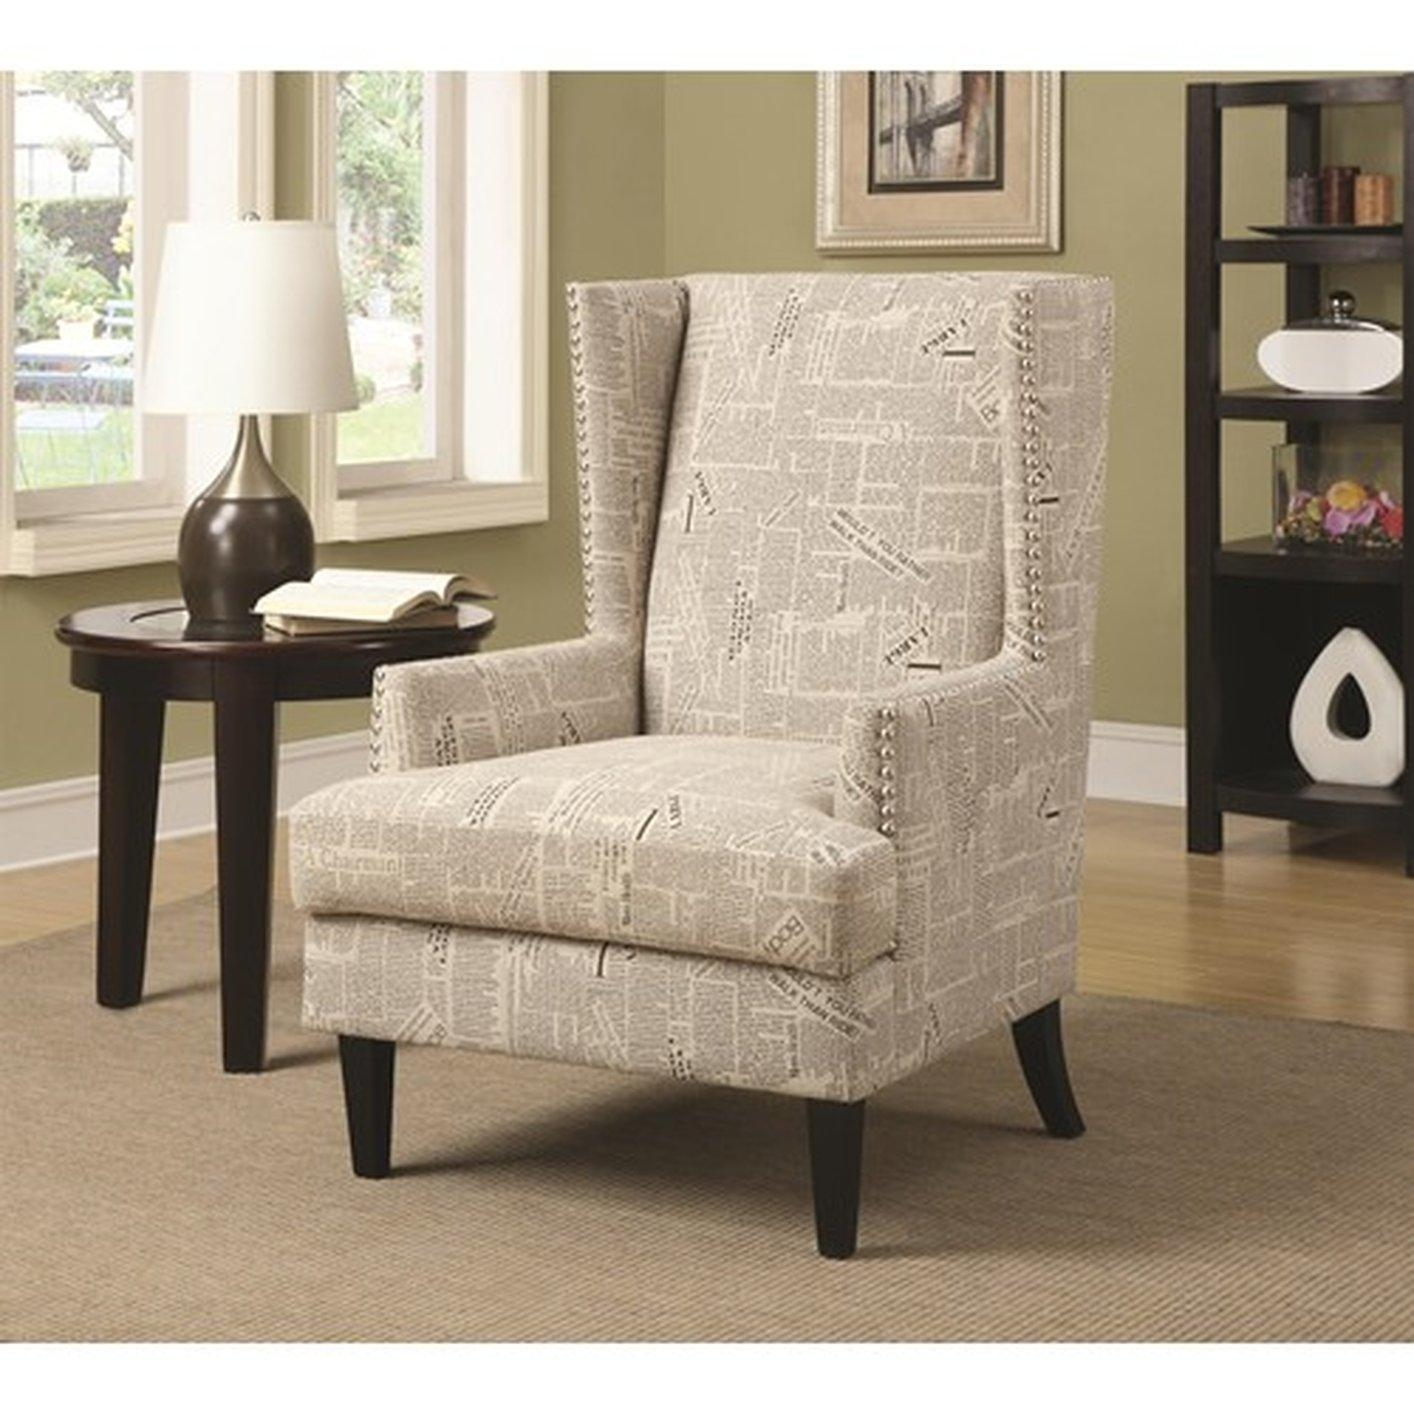 Chair Fabric Accent Chair Upholstered Chairs With Arms Whi Fabric Intended For Accent Sofa Chairs (View 2 of 20)